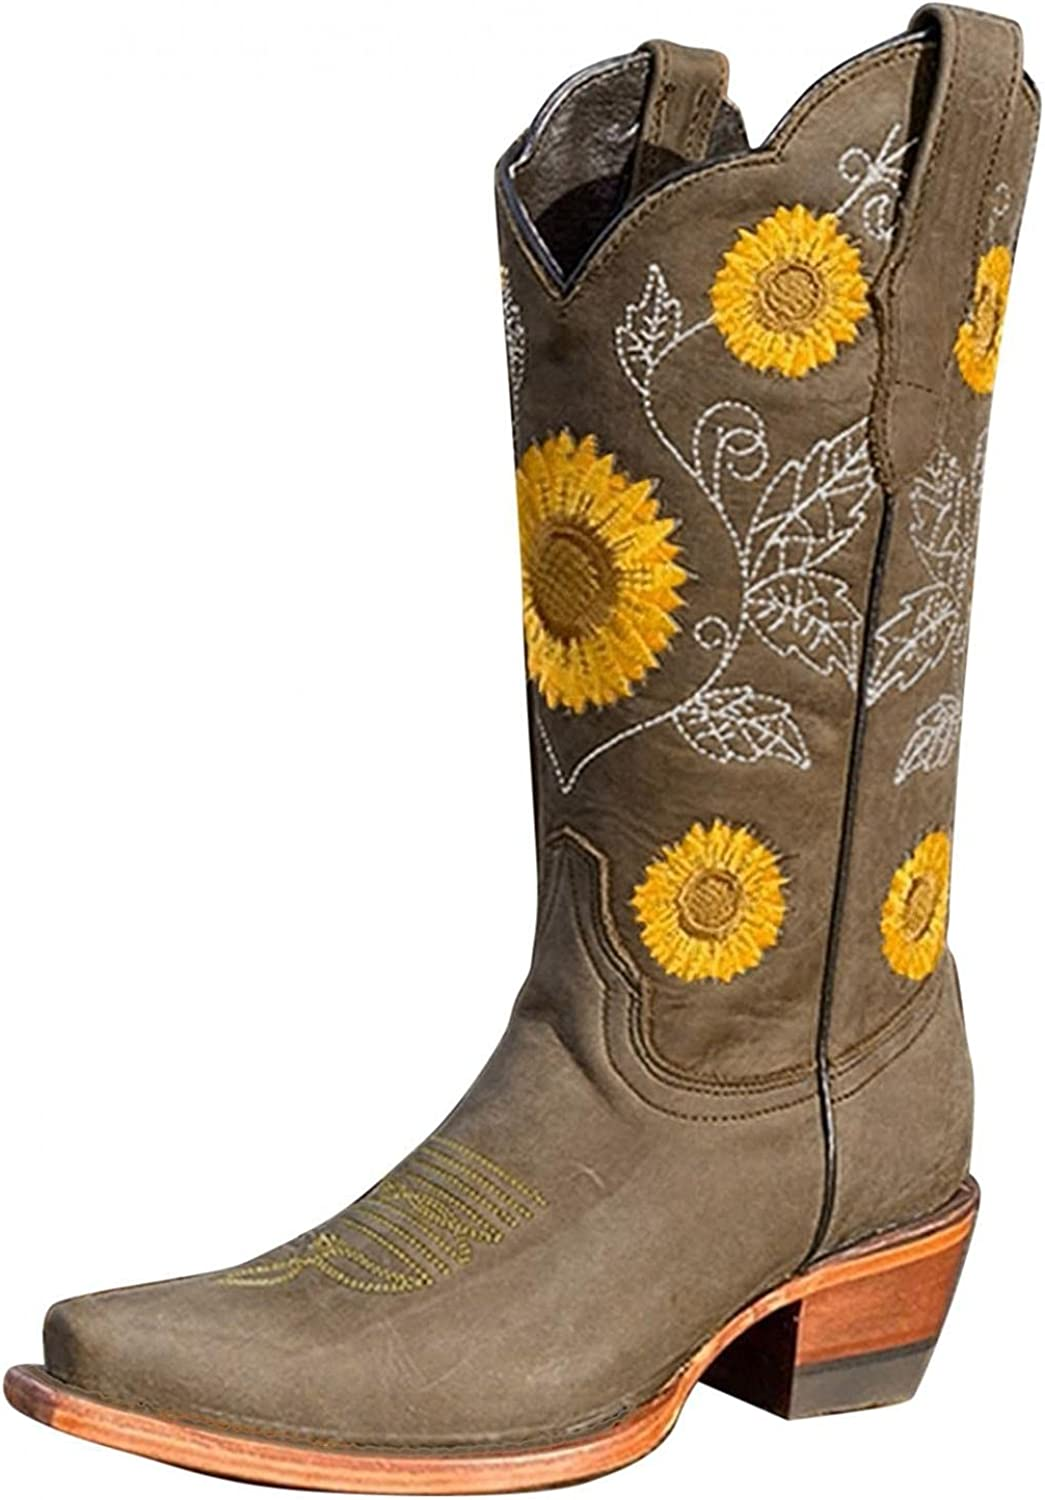 AODONG Bombing new work Boots Quality inspection for Women Sunflowers Cowboy Ca Mid Embroidery